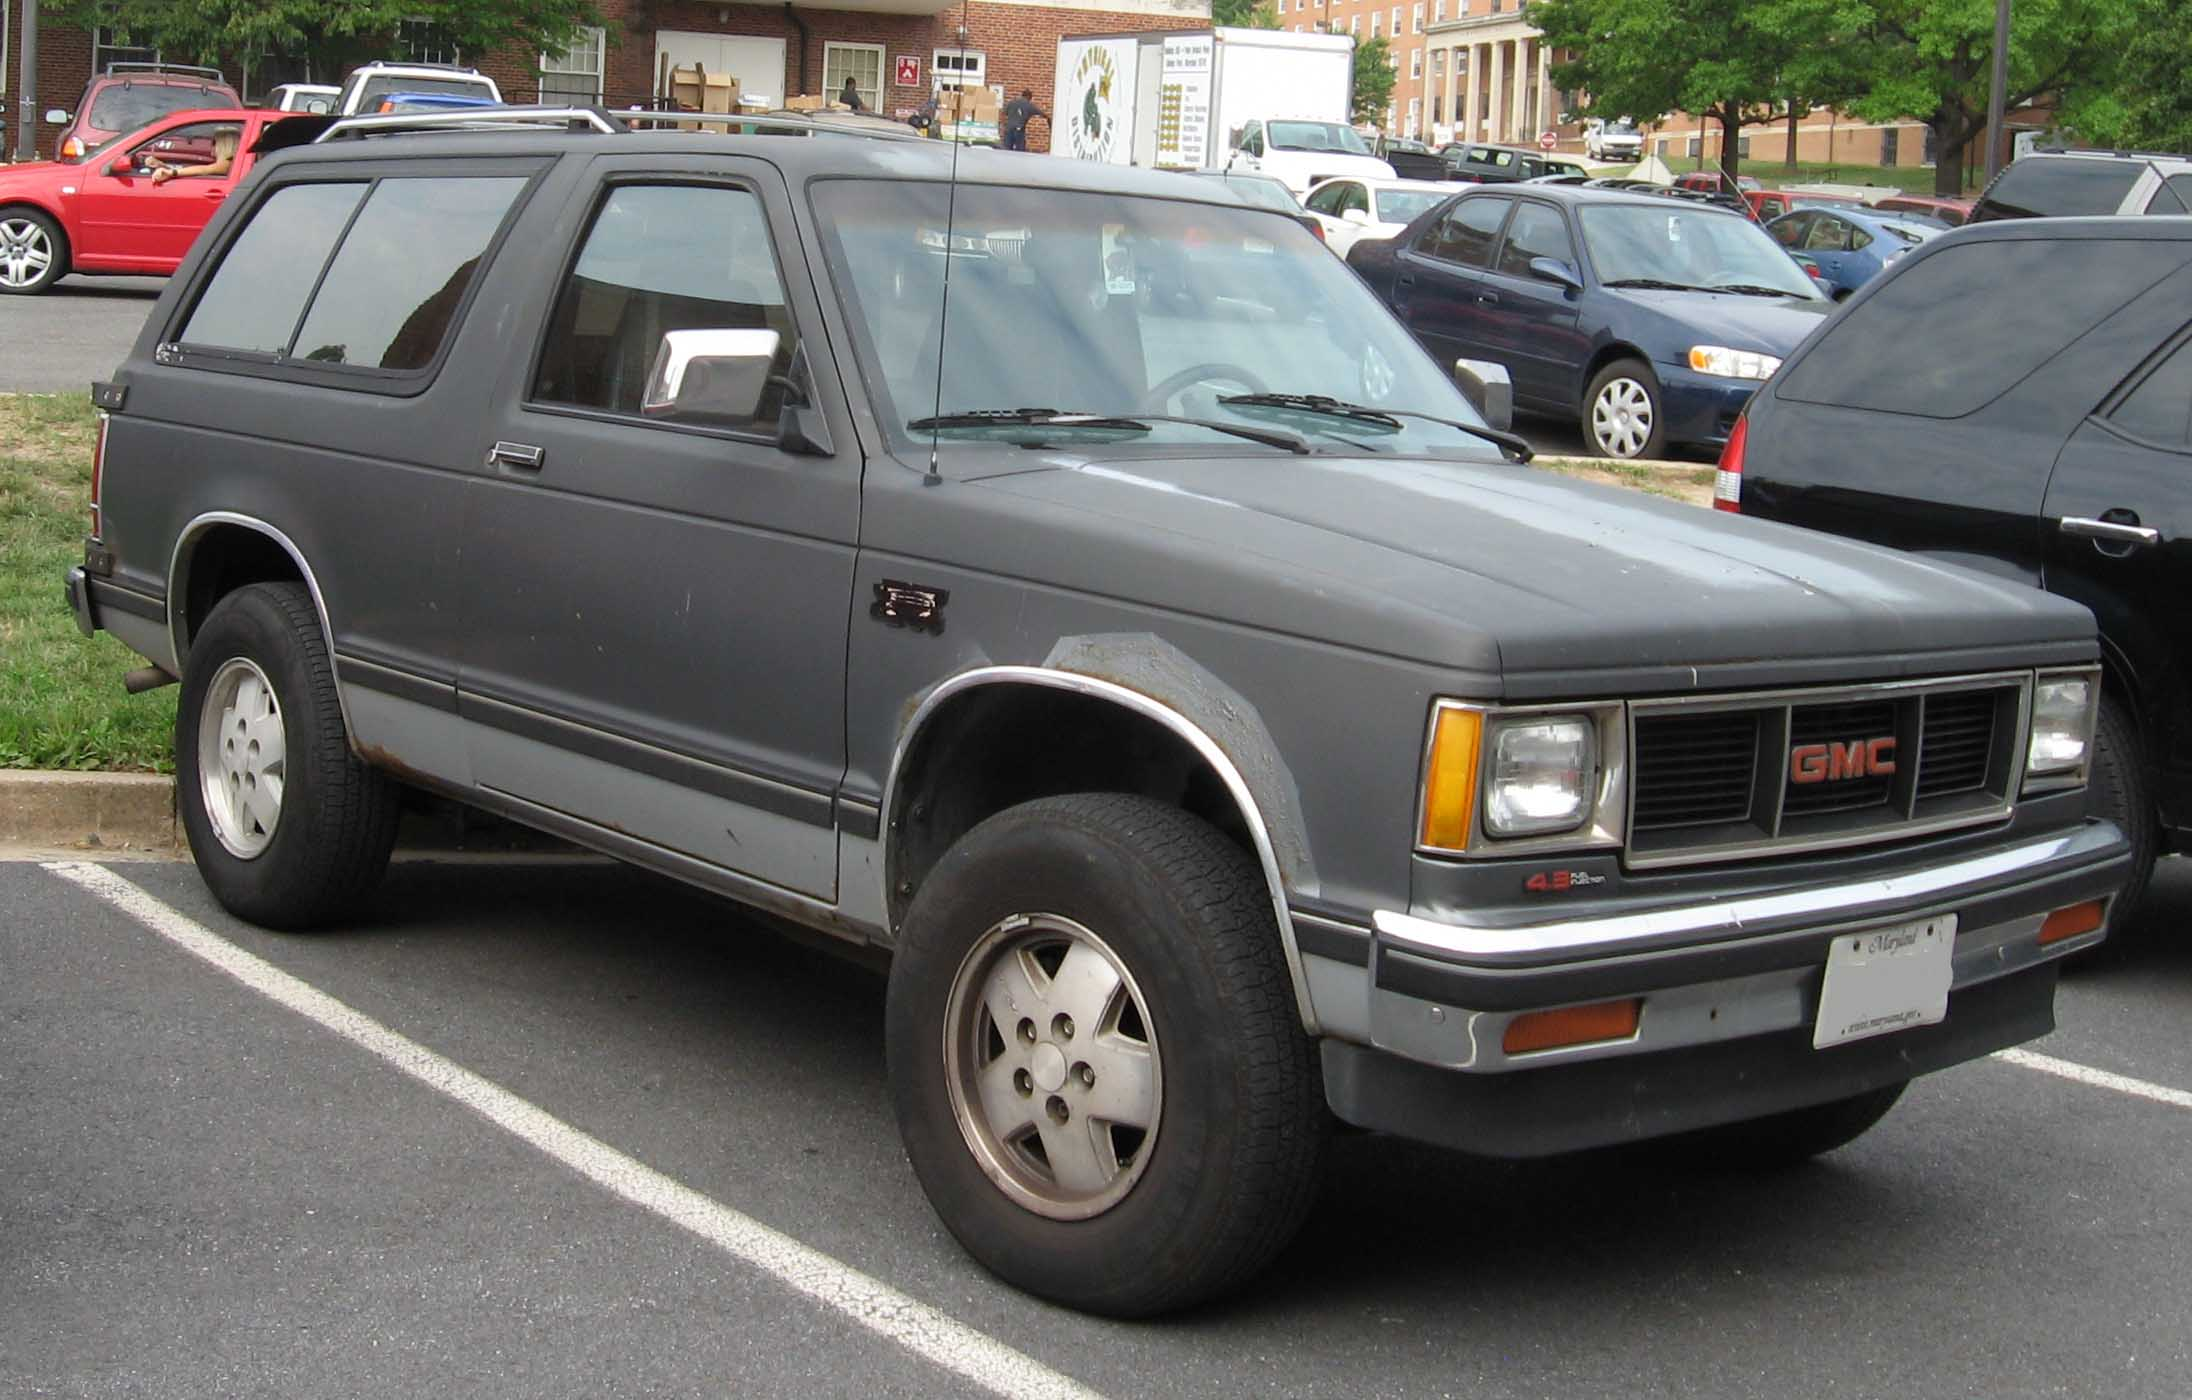 1991 GMC S-15 Jimmy #3